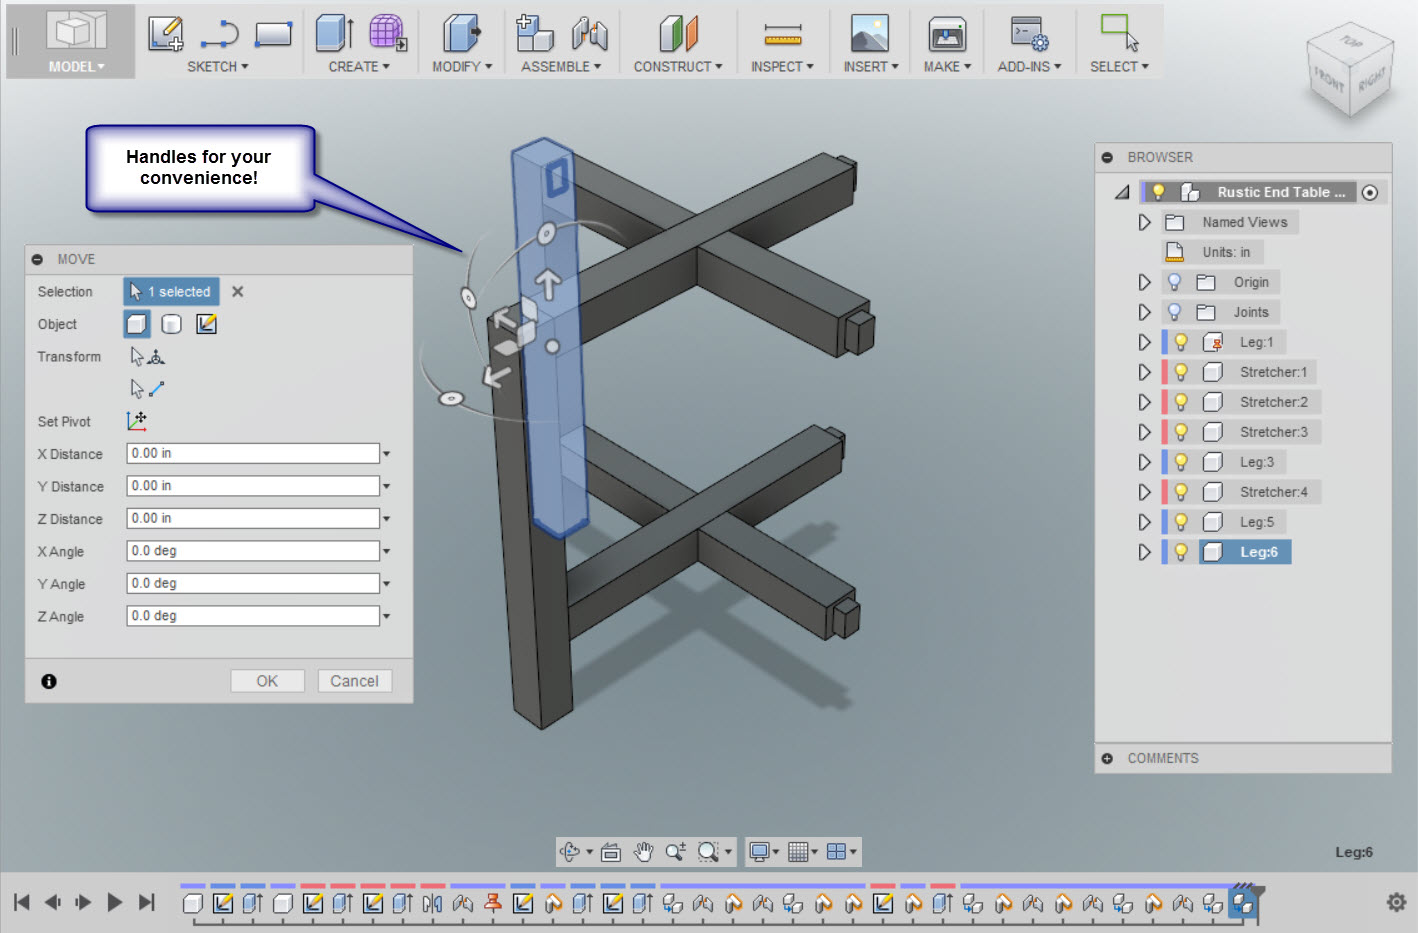 Life with Fusion 360 - Copying and Pasting Components in